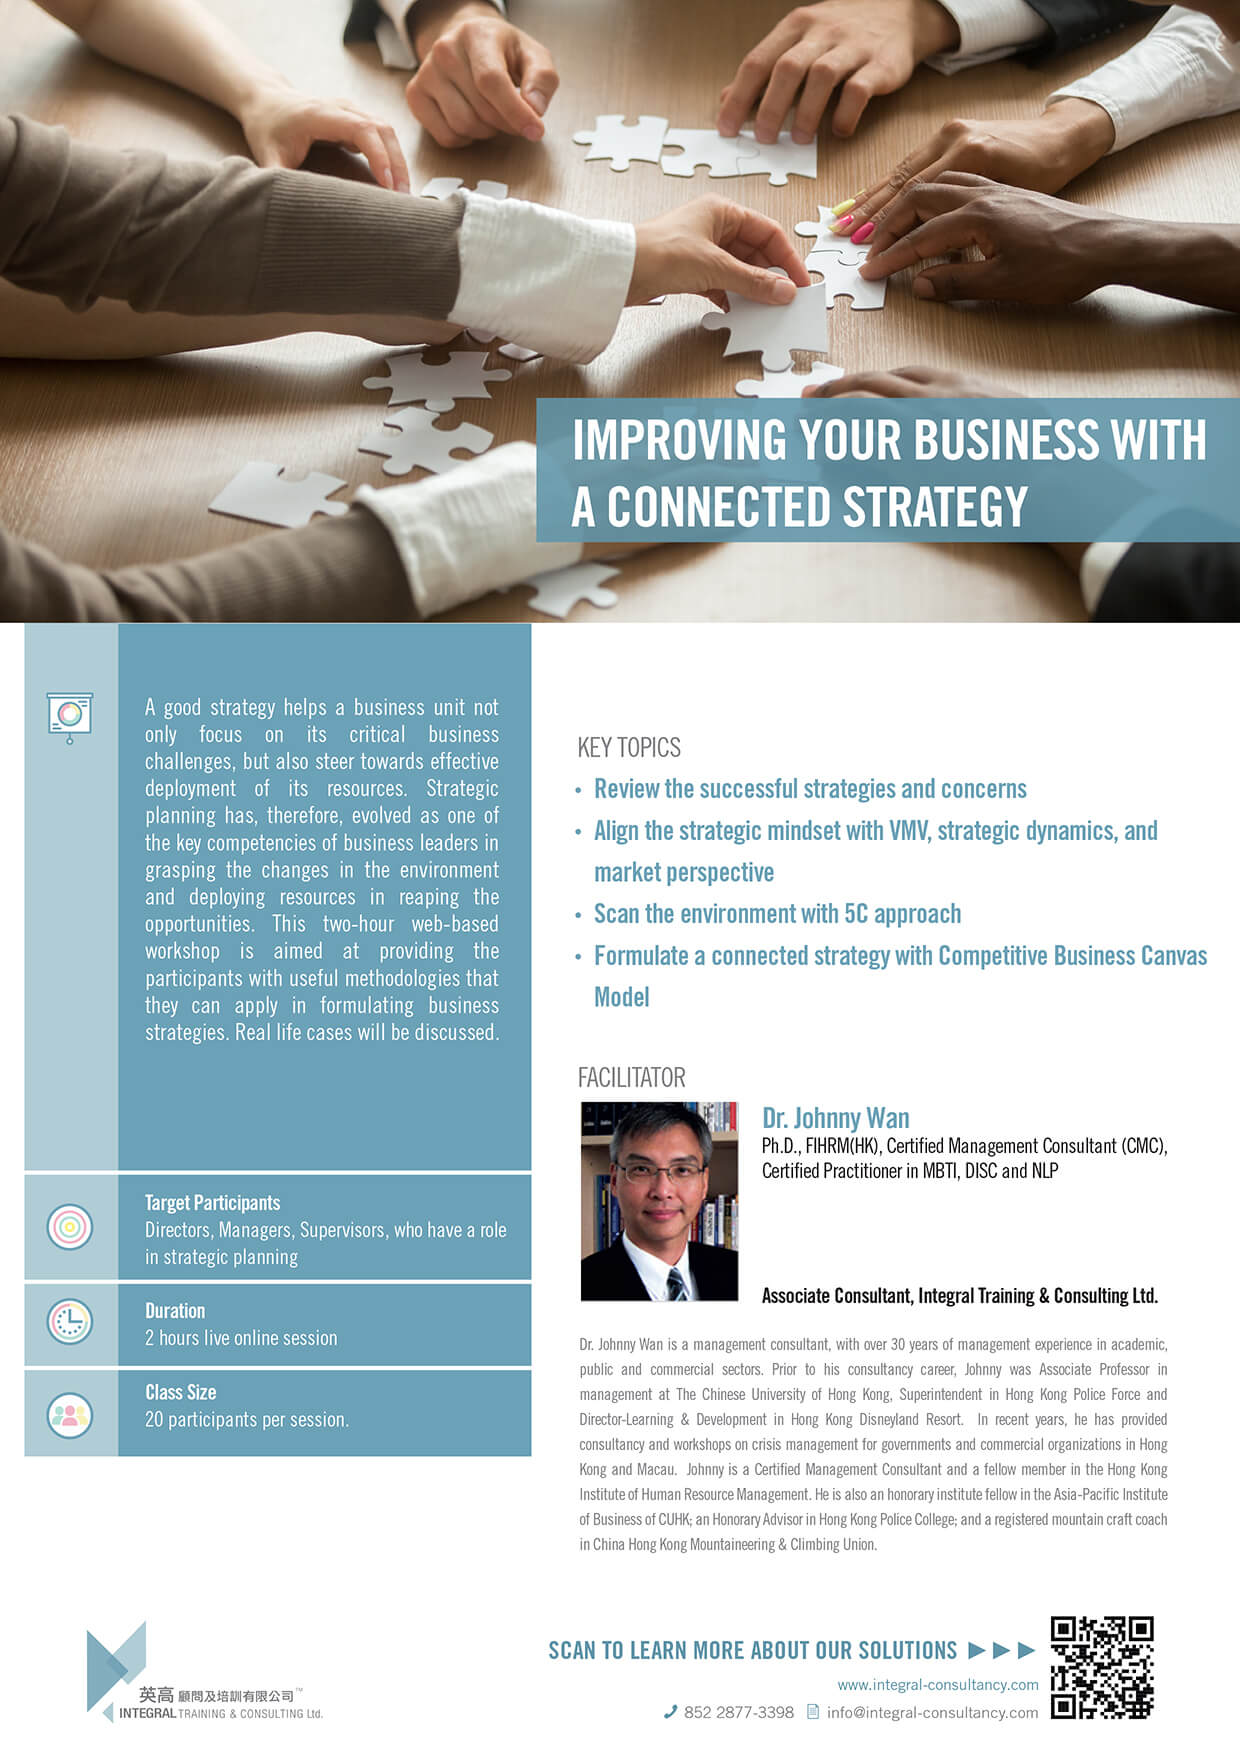 Improving your Business with a Connected Strategy